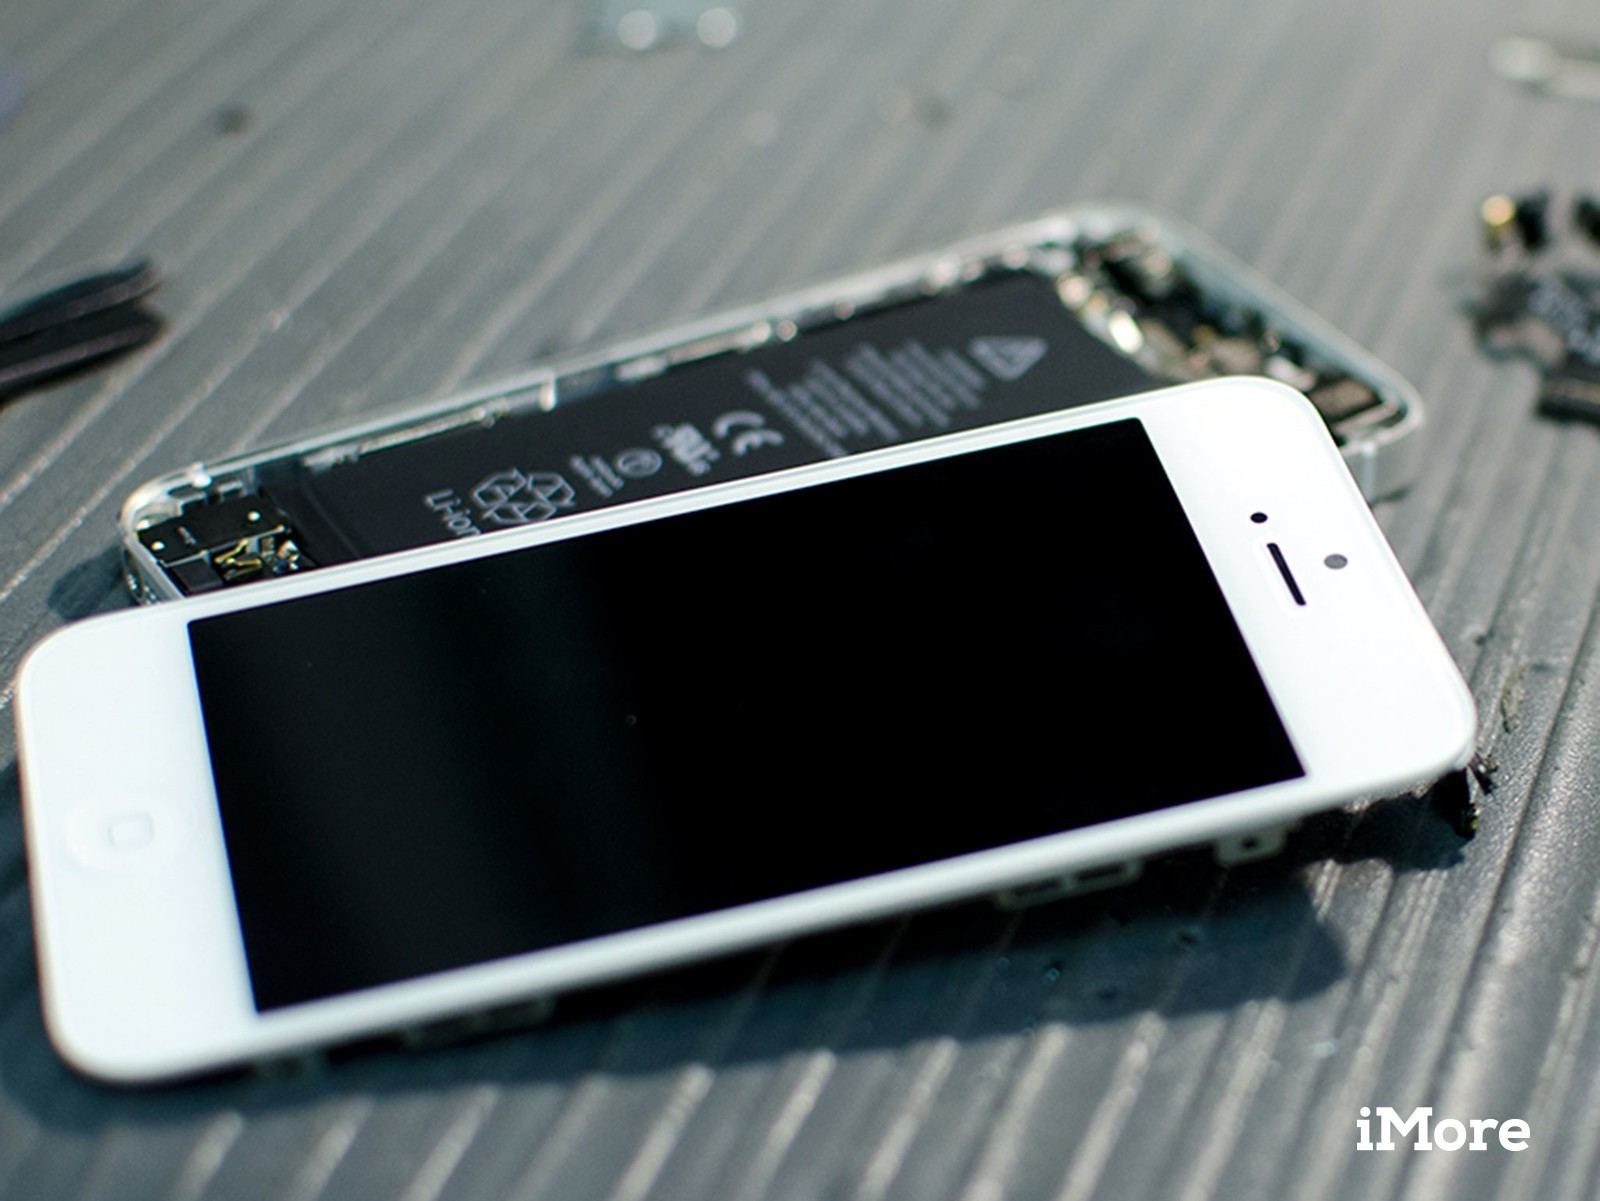 How to replace a cracked or unresponsive screen on an iPhone 5